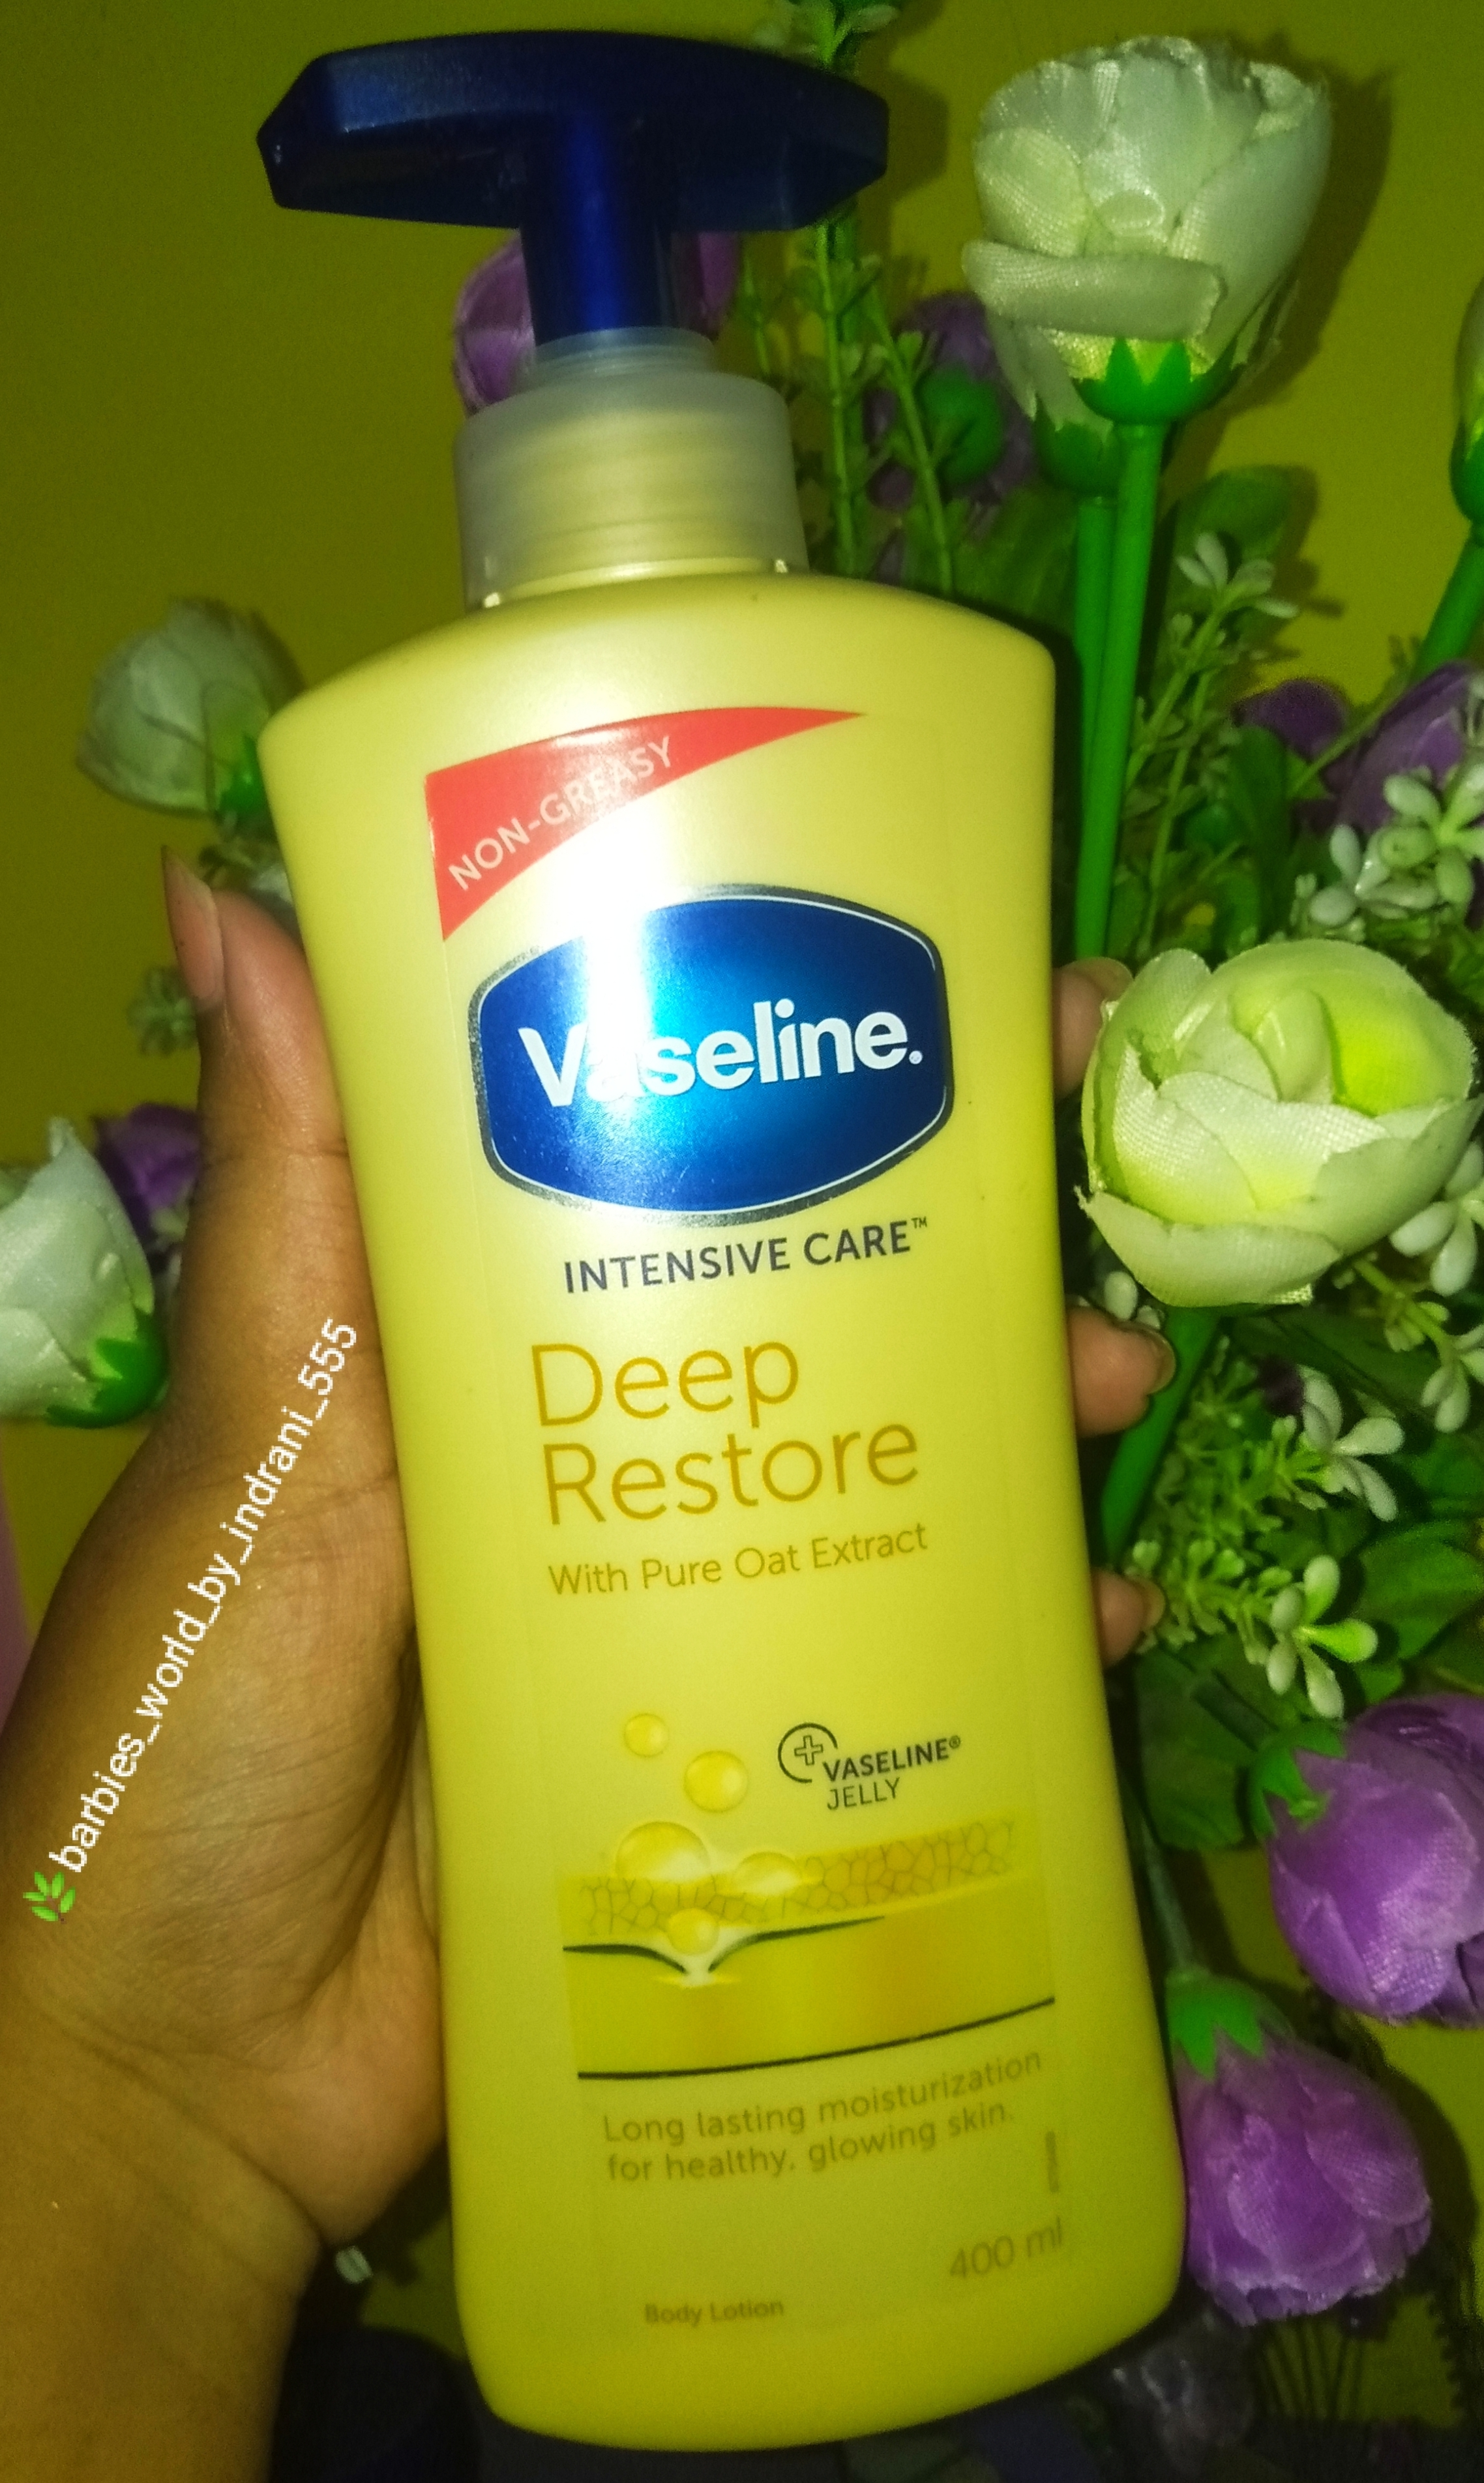 Vaseline Intensive Care Deep Restore Body Lotion-Must have Body Lotion-By indranireviews